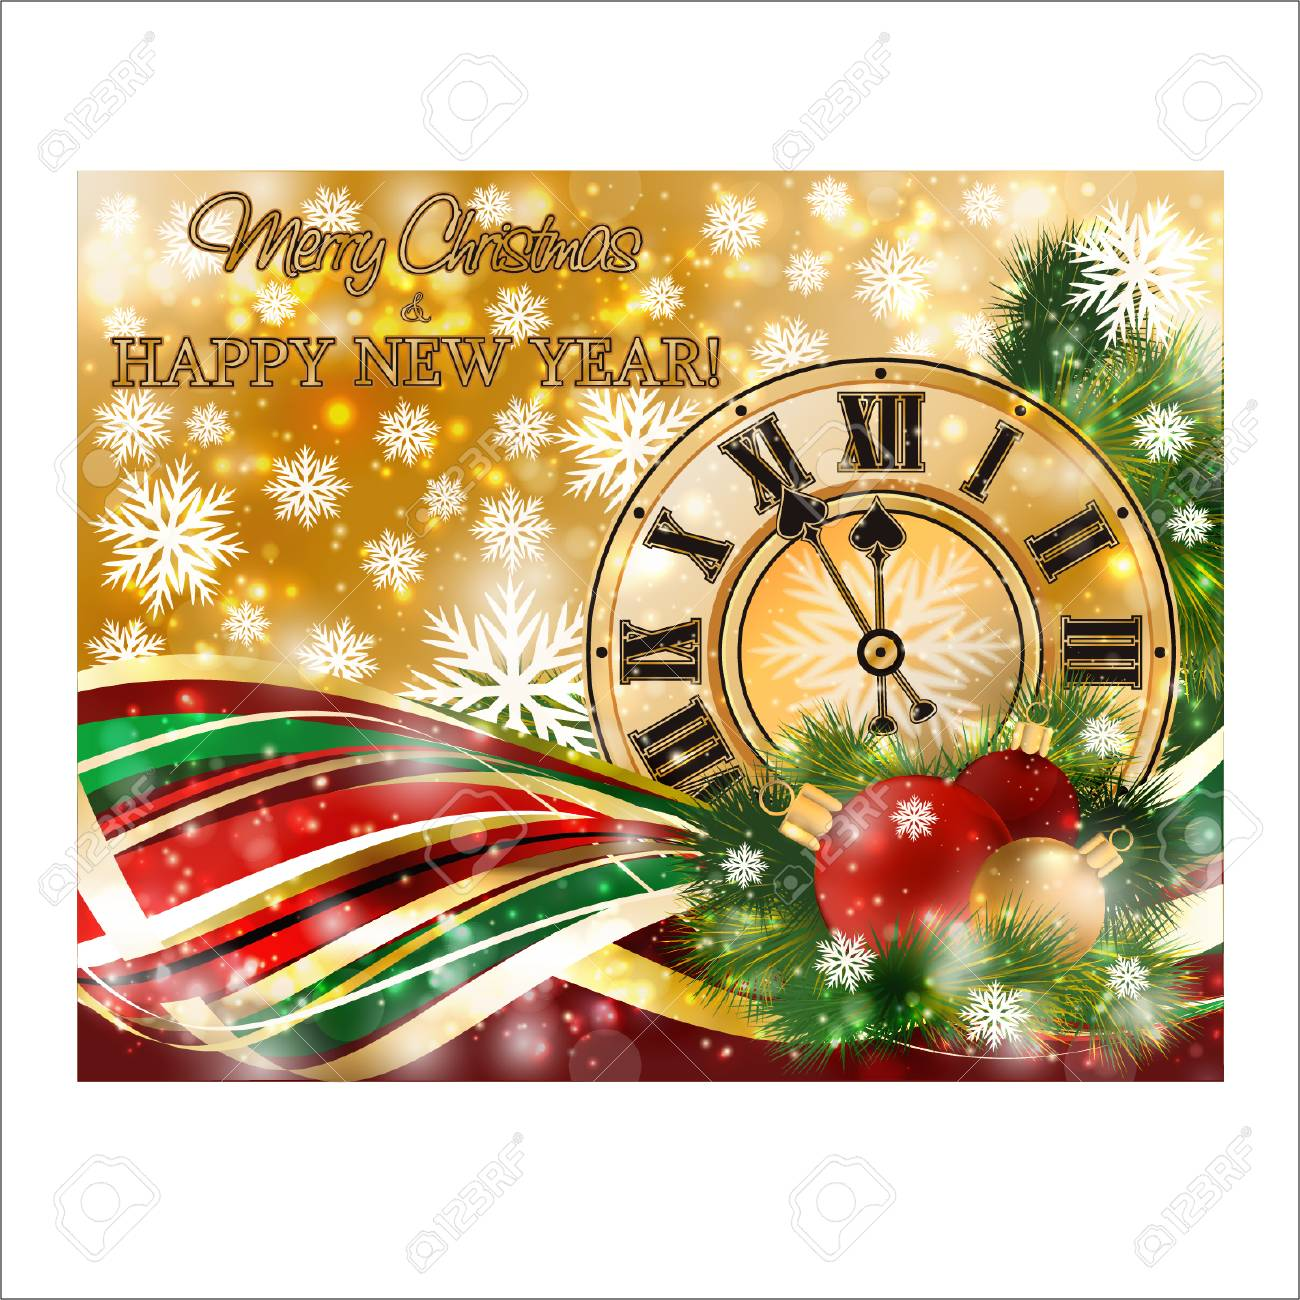 merry christmas new year banner with xmas clock vector illustration stock vector 113023757